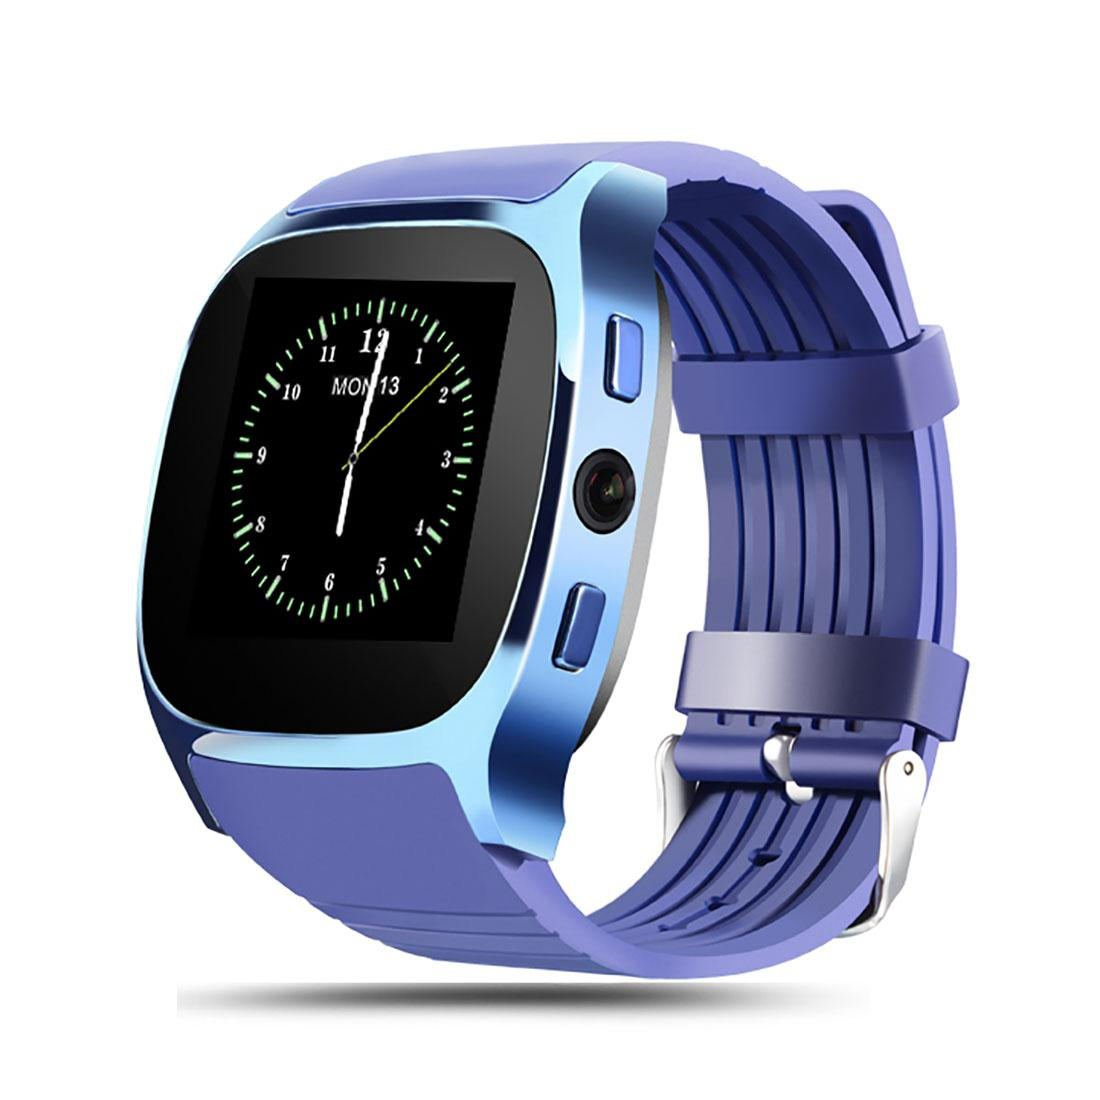 T8 Bluetooth Smart SIM Card Phone Watch Sports Steps Smart Wear Android Watch Blue